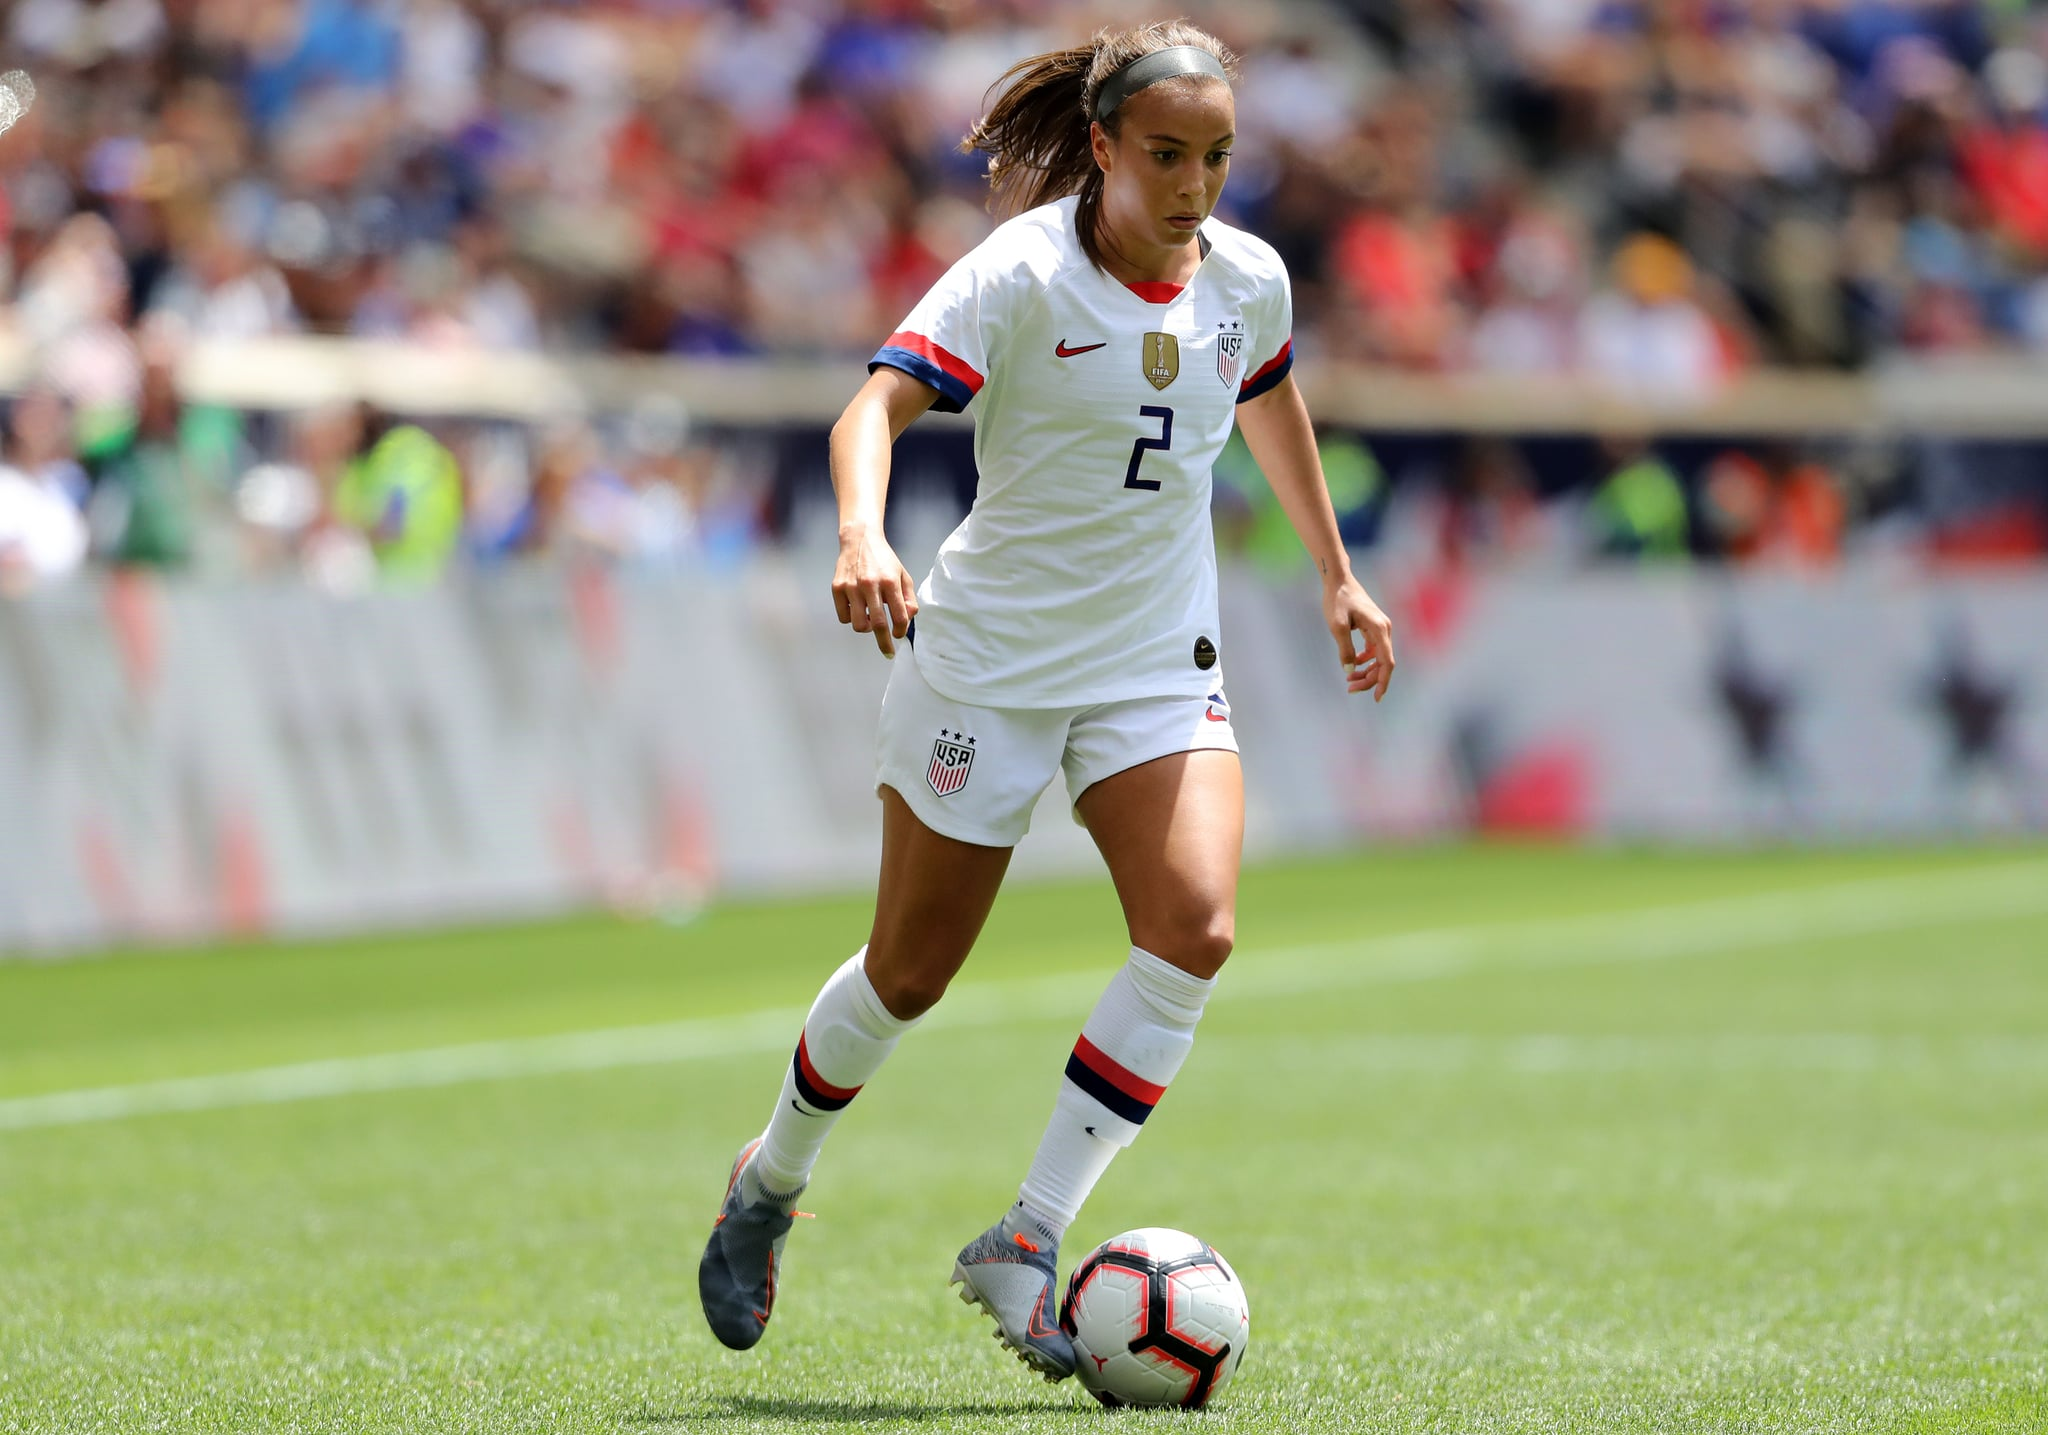 HARRISON, NEW JERSEY - MAY 26:  Mallory Pugh #2 of the United States passes the ball in the second half against Mexico at Red Bull Arena on May 26, 2019 in Harrison, New Jersey. (Photo by Elsa/Getty Images)